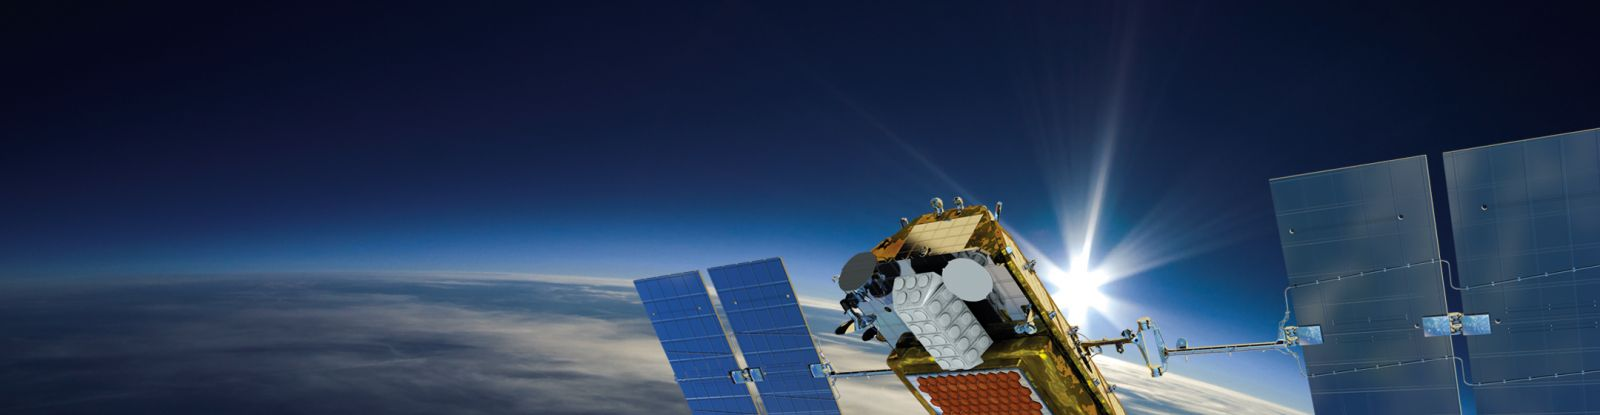 An artist's rendering of an Iridium NEXT satellite in orbit above Earth. Image Credit: Iridium